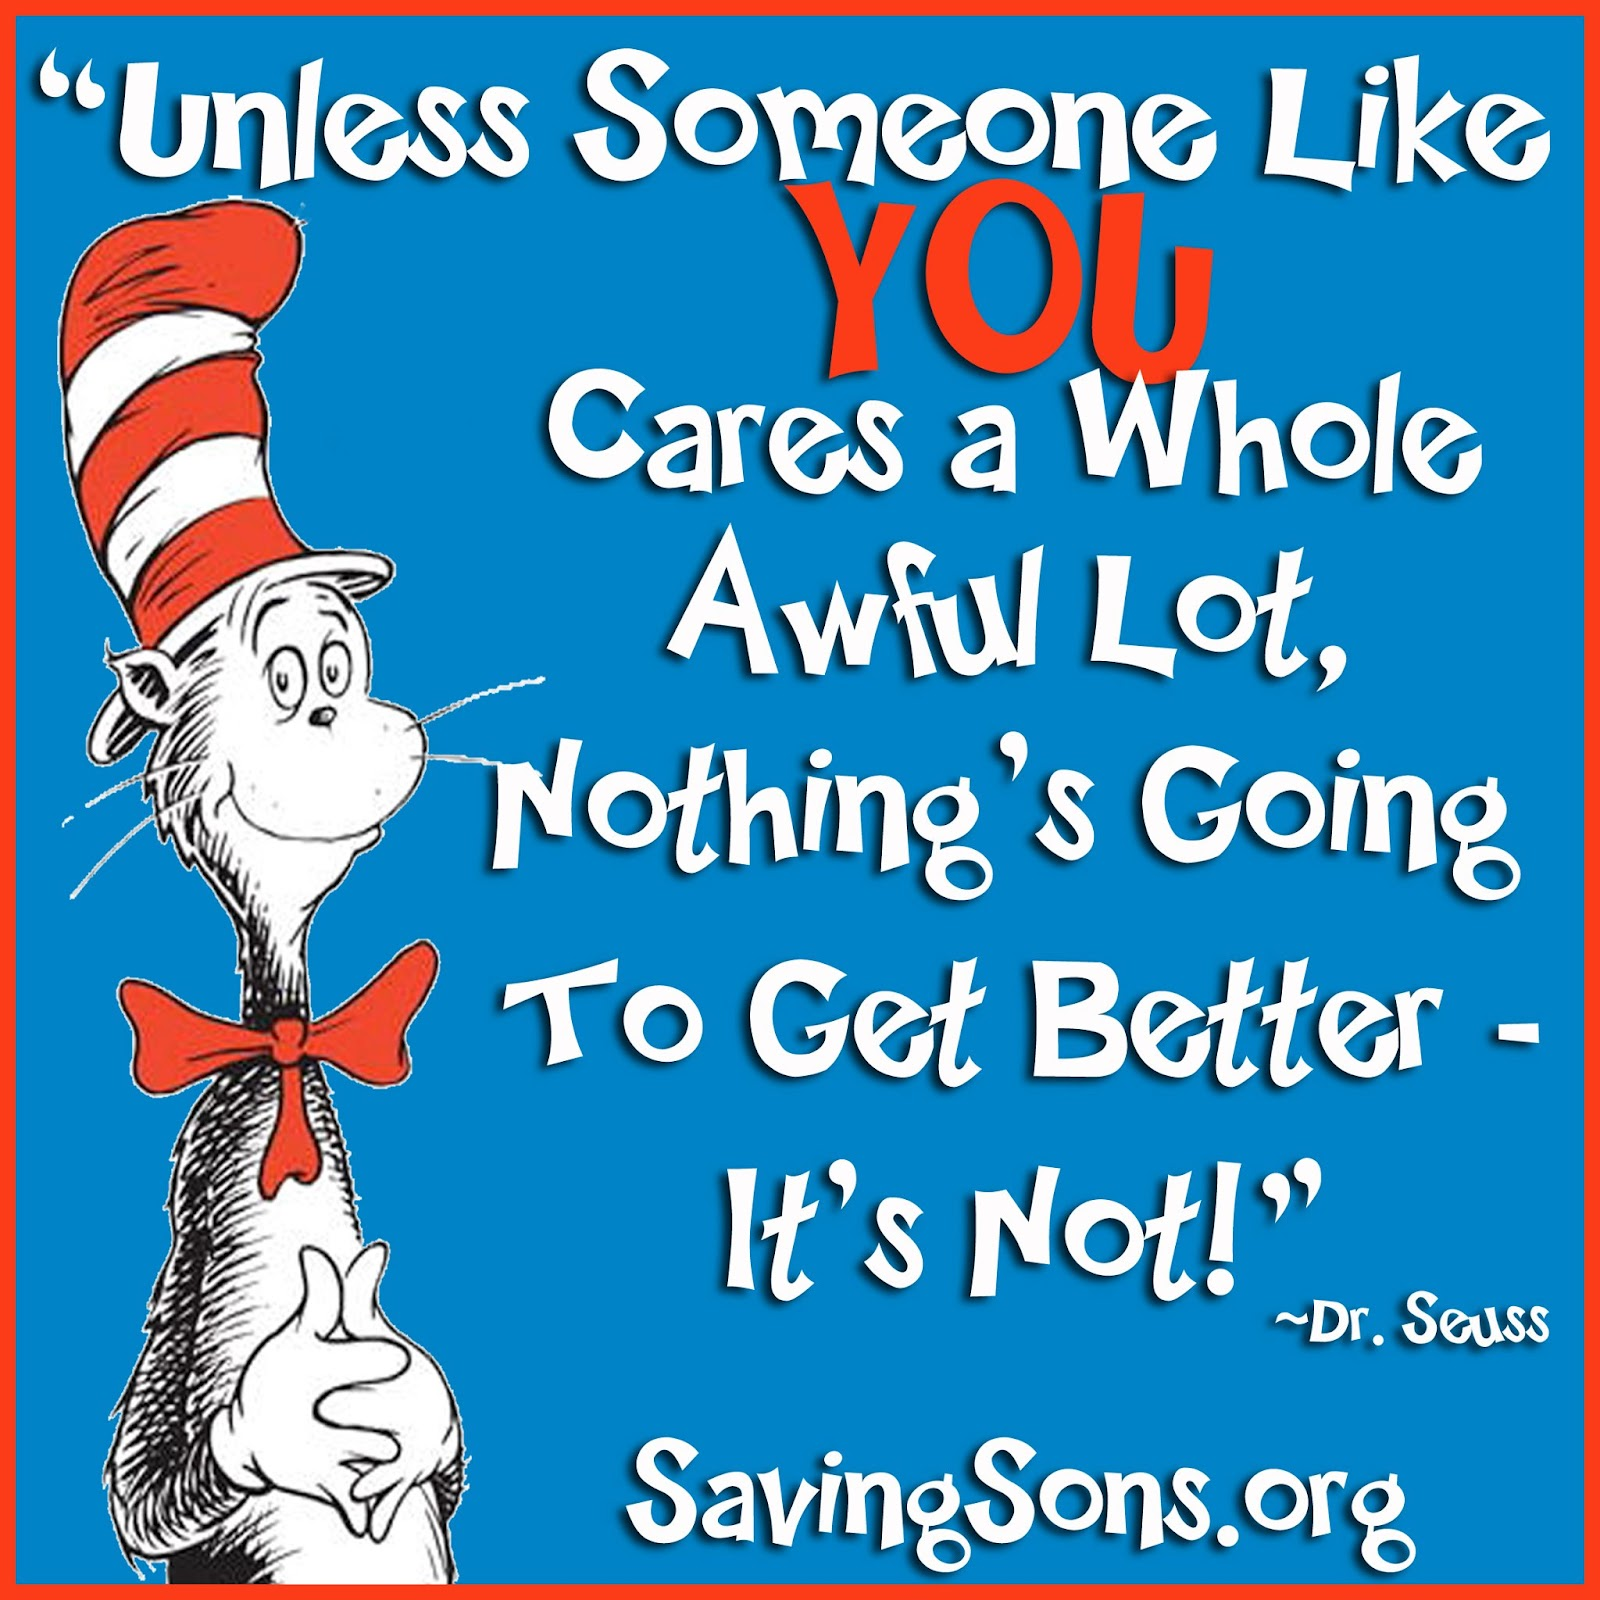 Dr Seuss Quotes About Home Quotesgram. Song Quotes Luke Bryan. Encouragement Quotes In Study. Nice Nature View Quotes. Harry Potter Quotes Instagram Captions. Trust Commitment Quotes. Coffee Reading Quotes. Strong Revenge Quotes. Famous Quotes Gossip